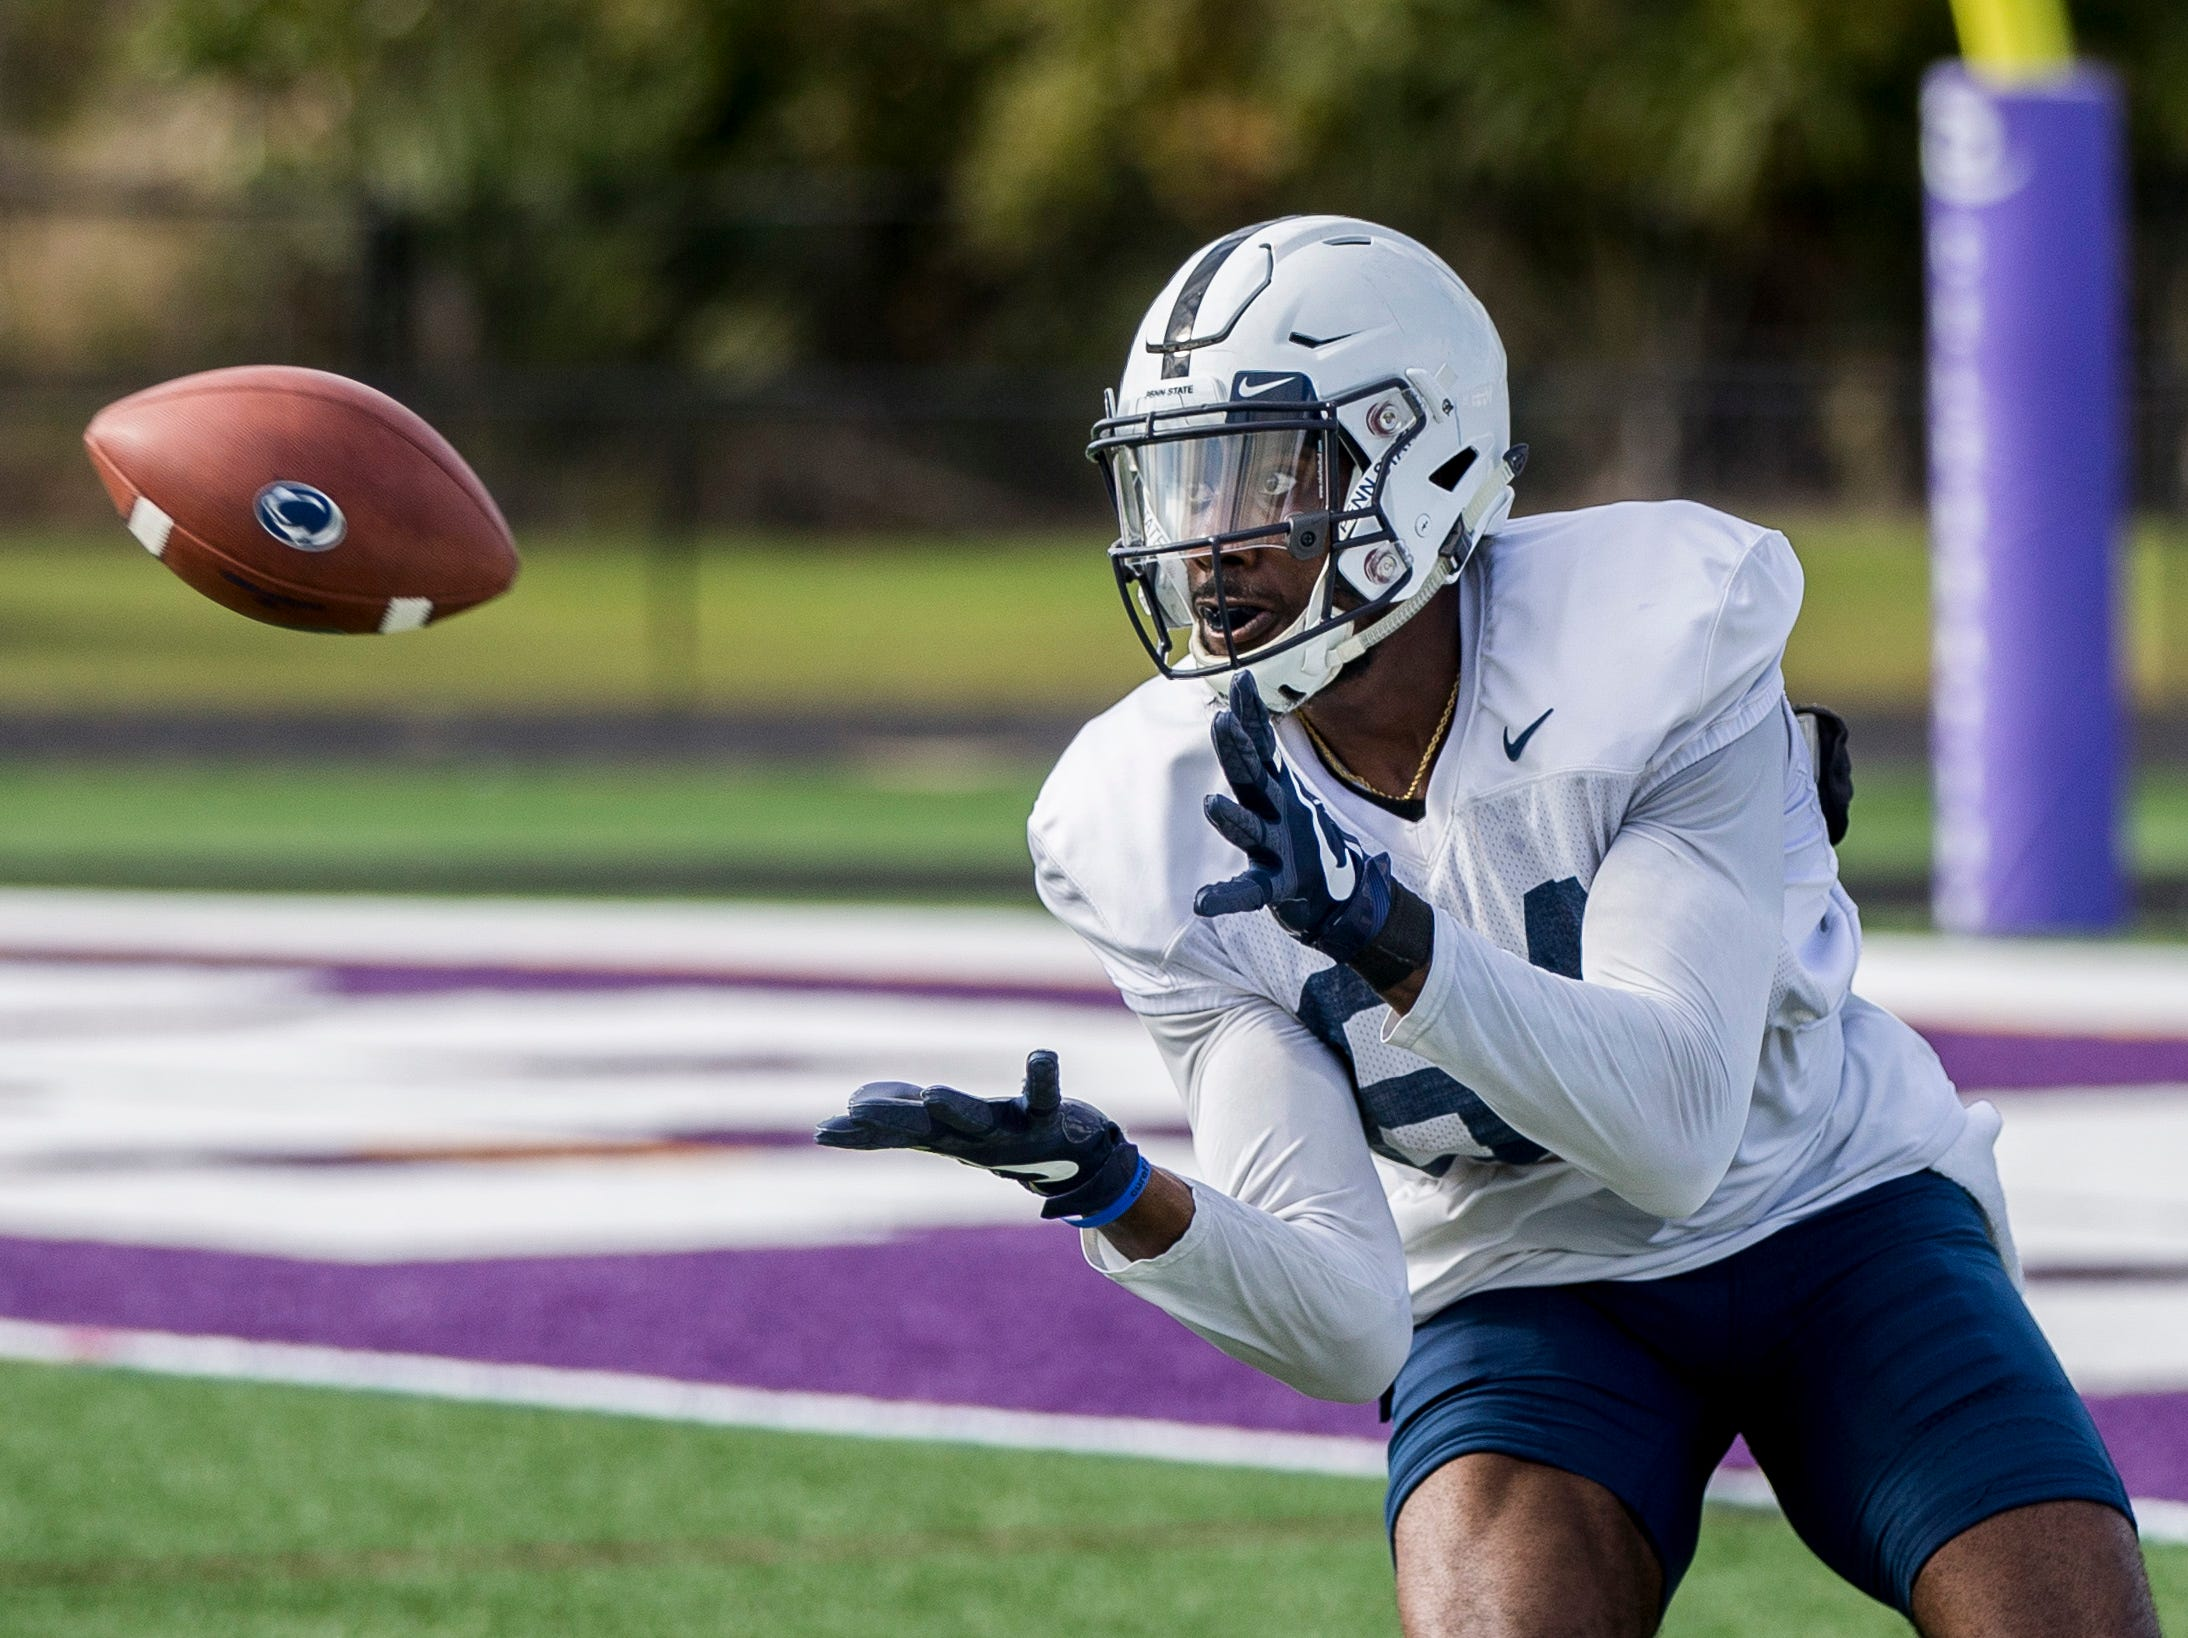 Penn State wide receiver Juwan Johnson hauls in a pass during practice for the Citrus Bowl NCAA college football game on Saturday, Dec. 29, 2018, in Orlando, Fla. (Joe Hermitt/The Patriot-News via AP)